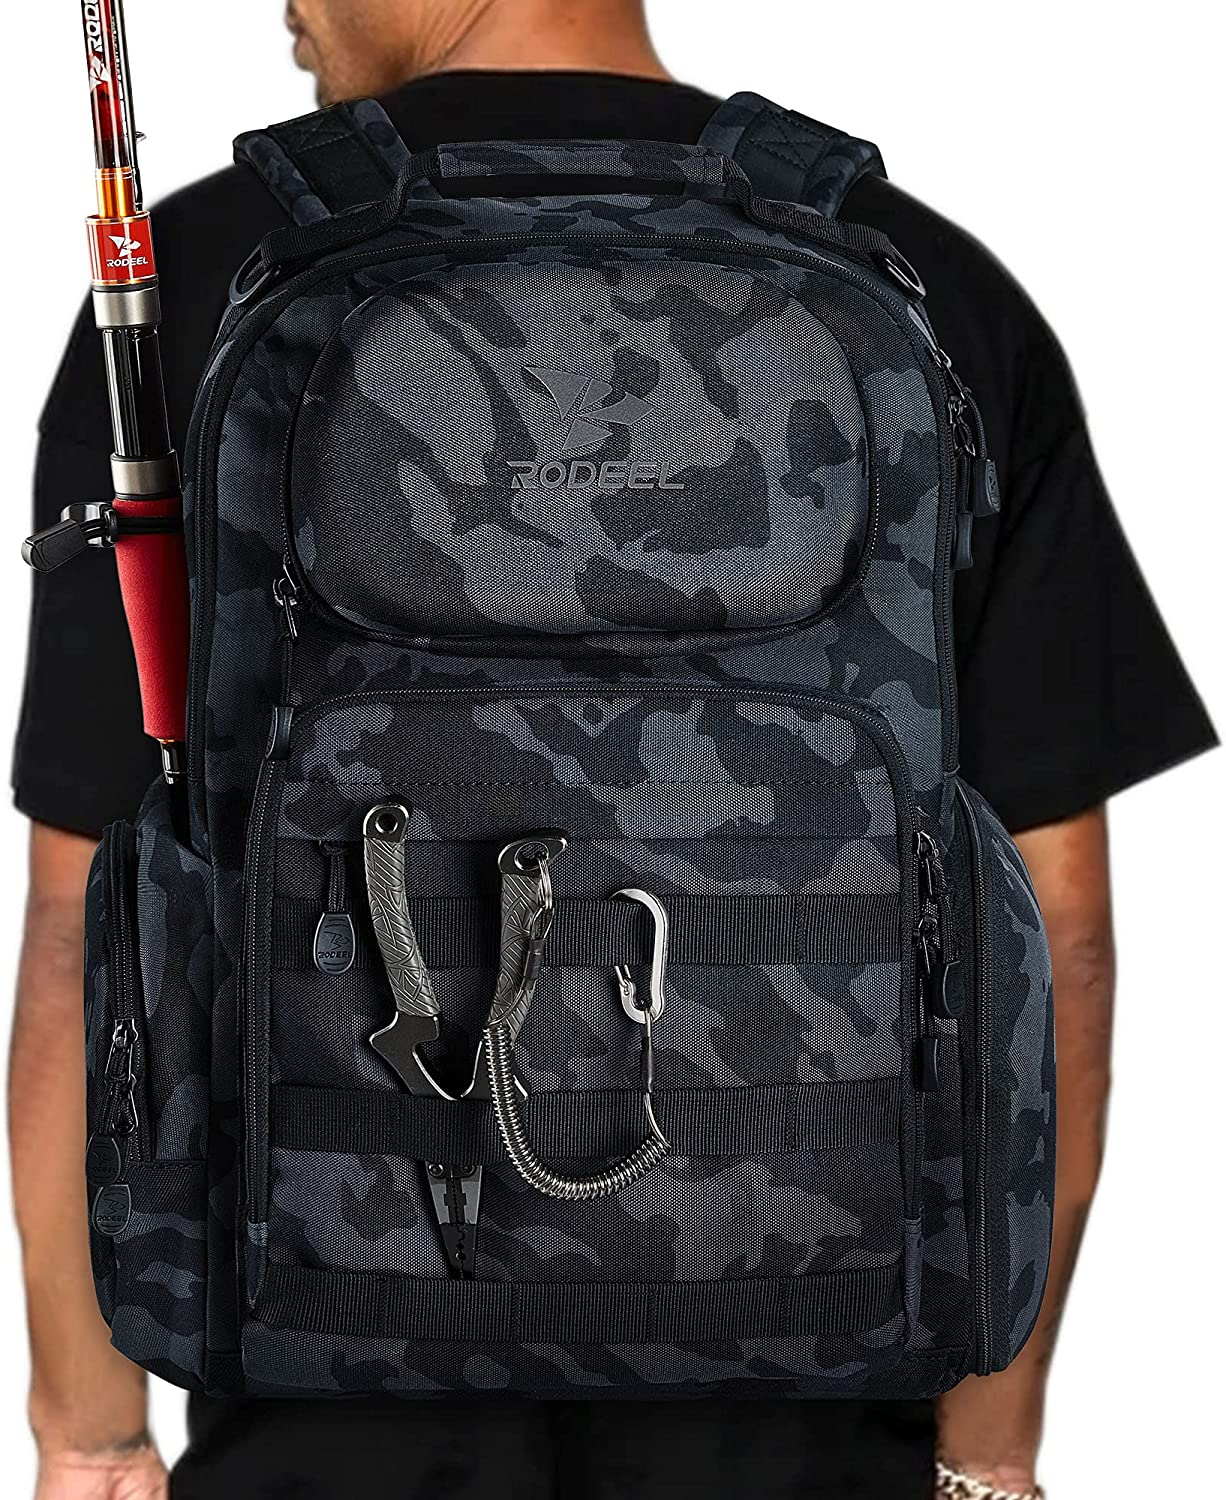 Rodeel Fishing Tackle Backpack Multi-functional Louisville-Jefferson County Mall Popular shop is the lowest price challenge Storage Large ba